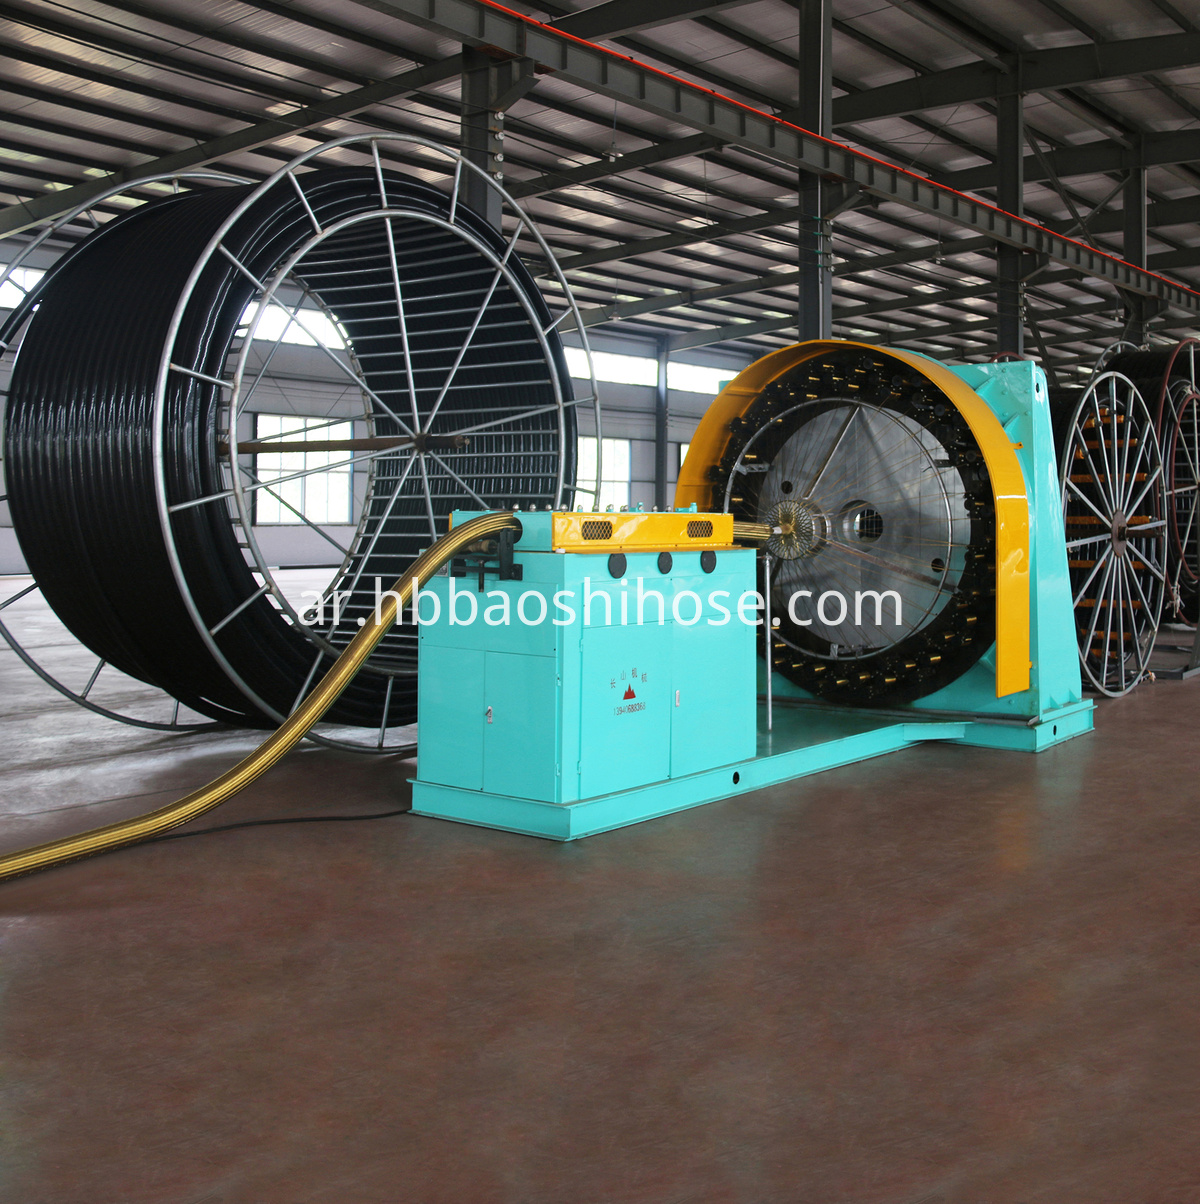 UHMWPE Braided Composite Pipeline